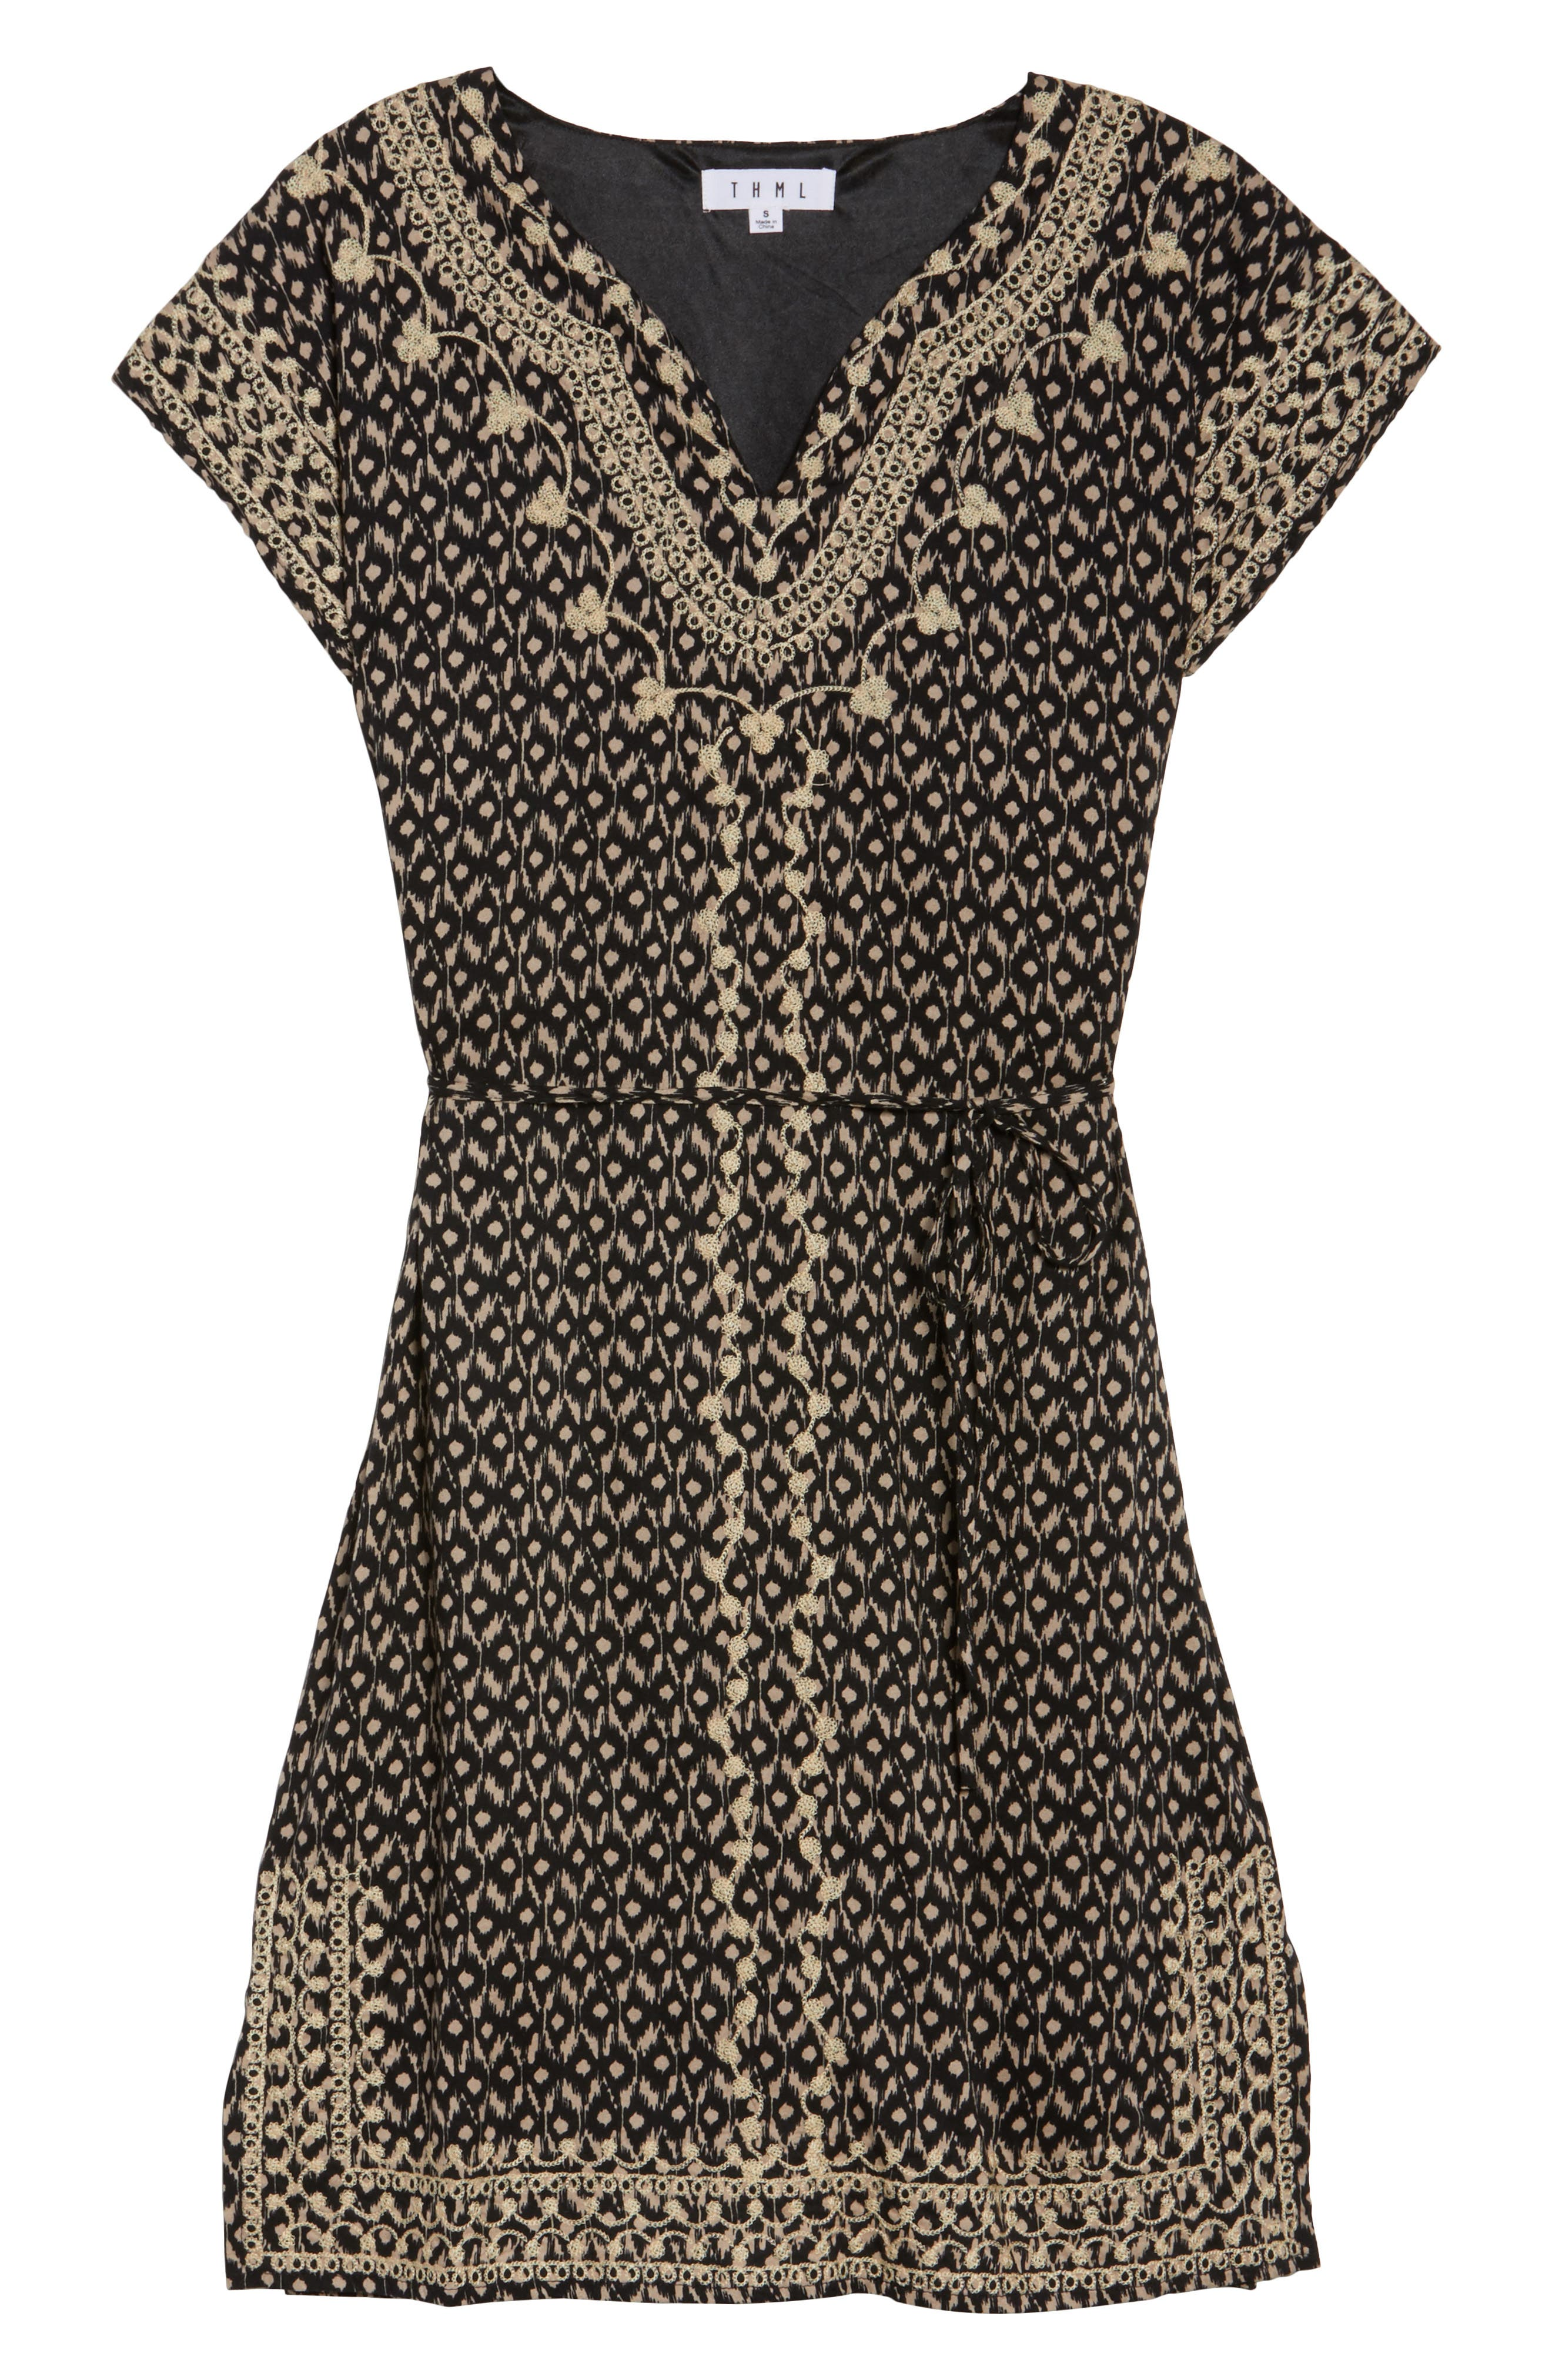 Embroidered Shift Dress,                             Alternate thumbnail 6, color,                             001